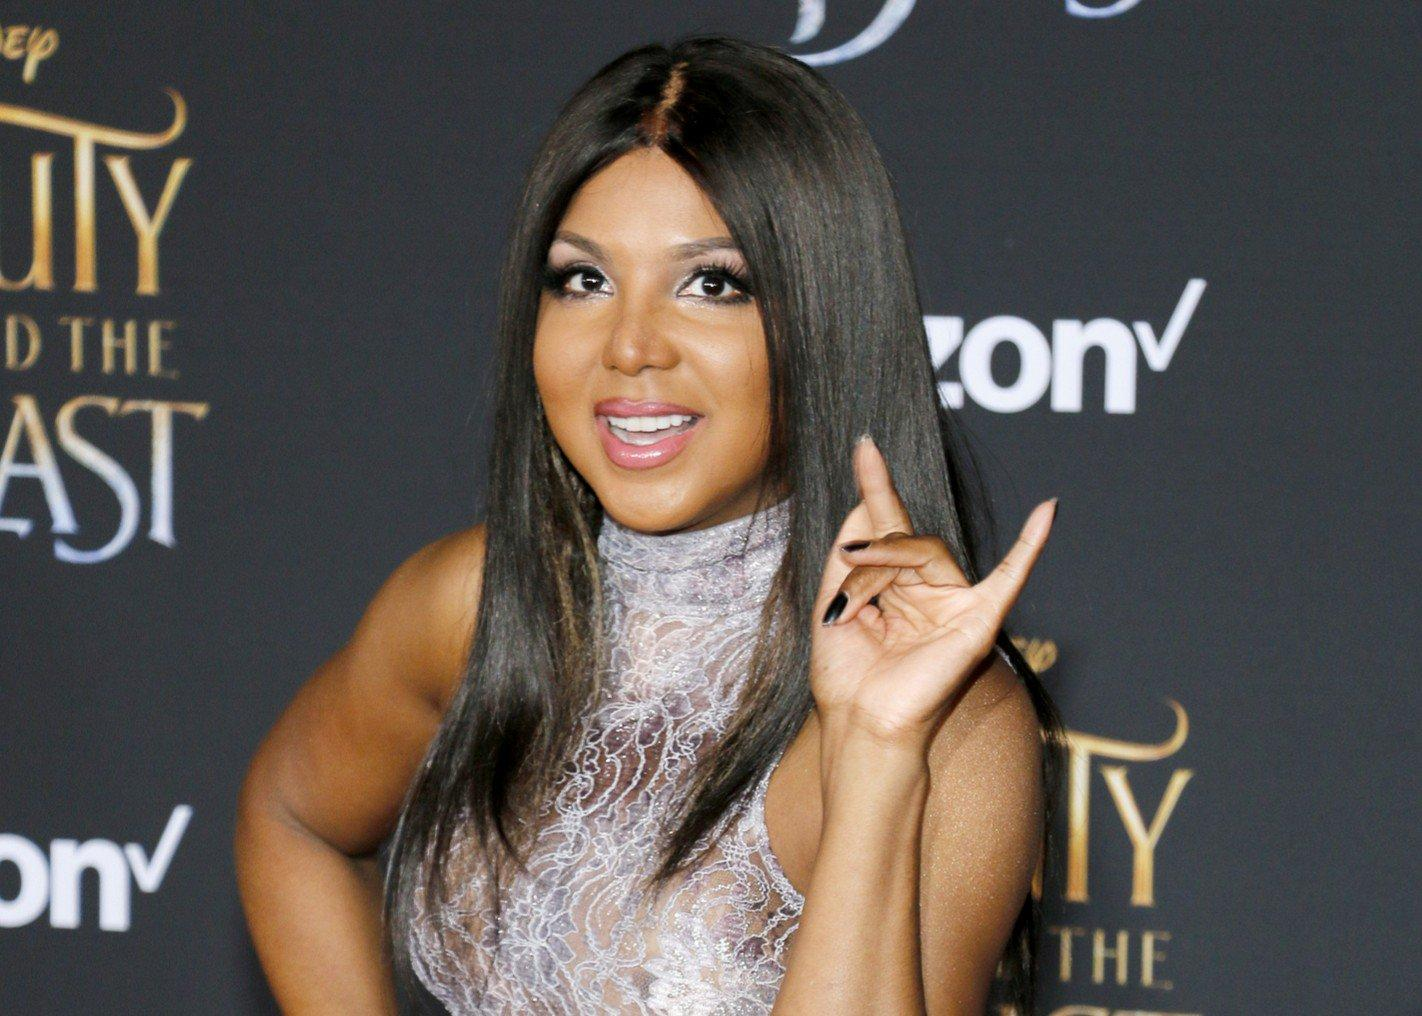 Toni Braxton Wishes Her Sister, Trina Braxton A Happy Birthday And Marks The Event With This Funny Video